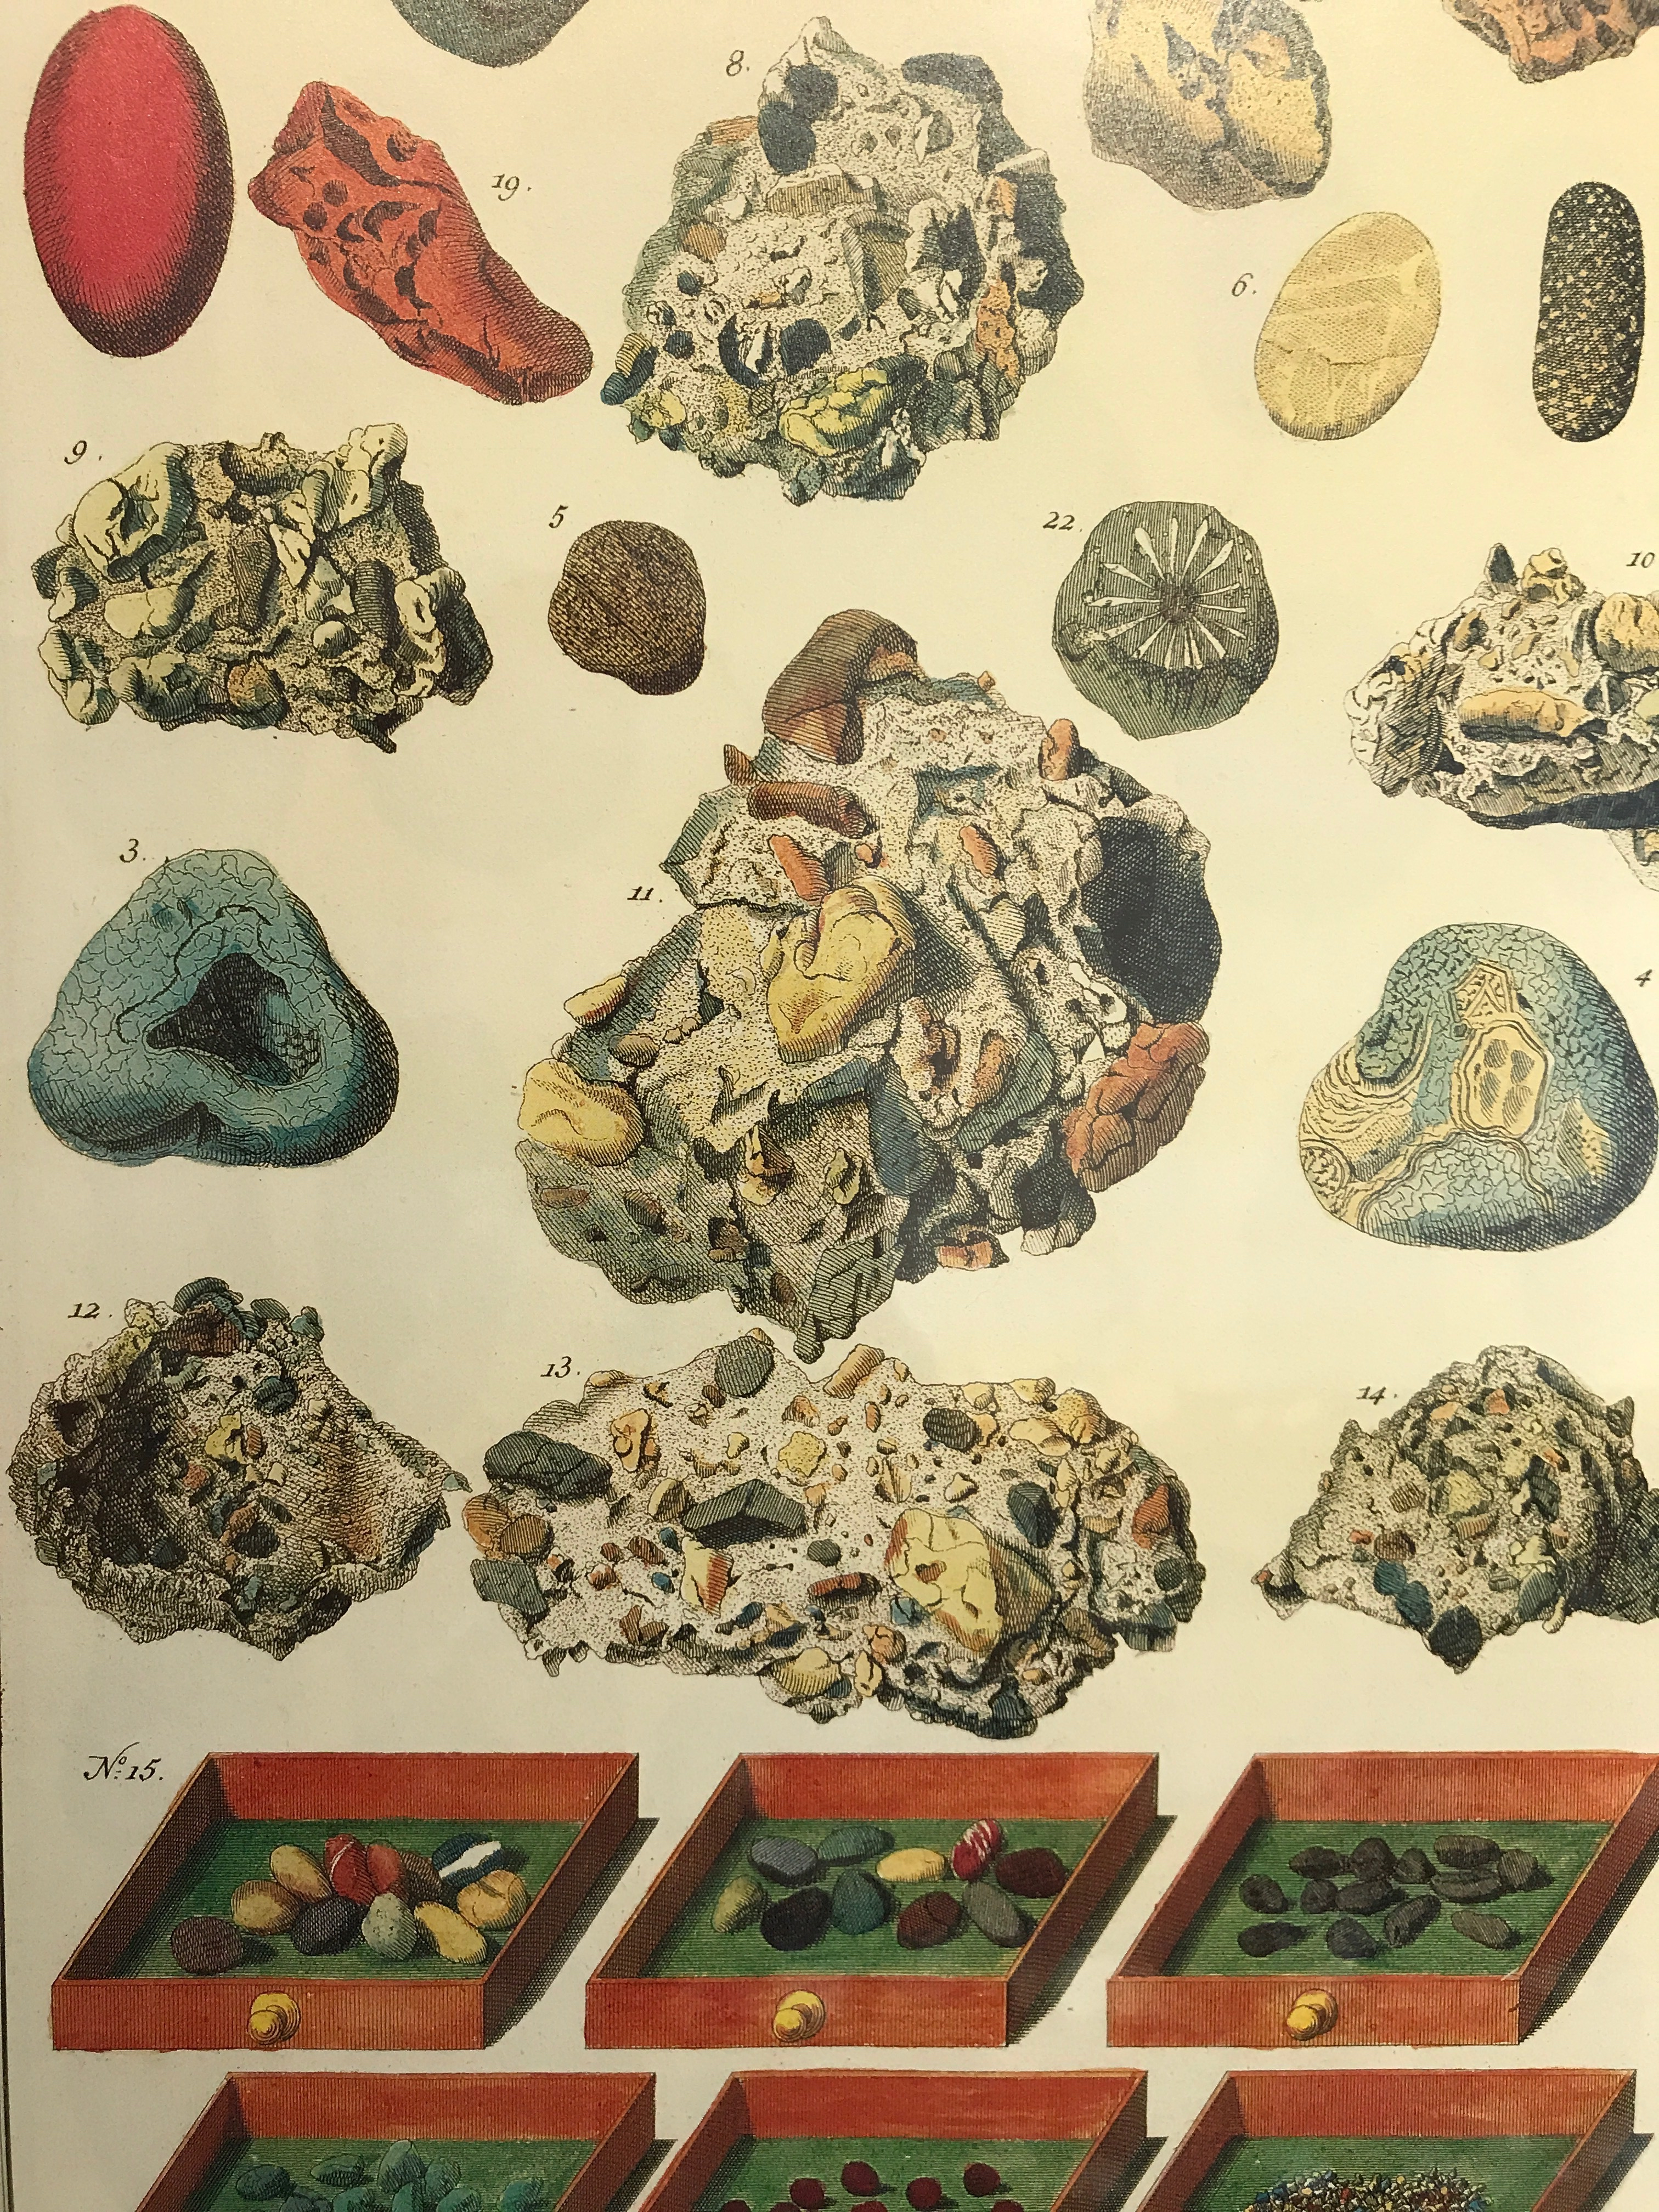 Albertus Seba Cabinet of Natural Curiosities. Poster